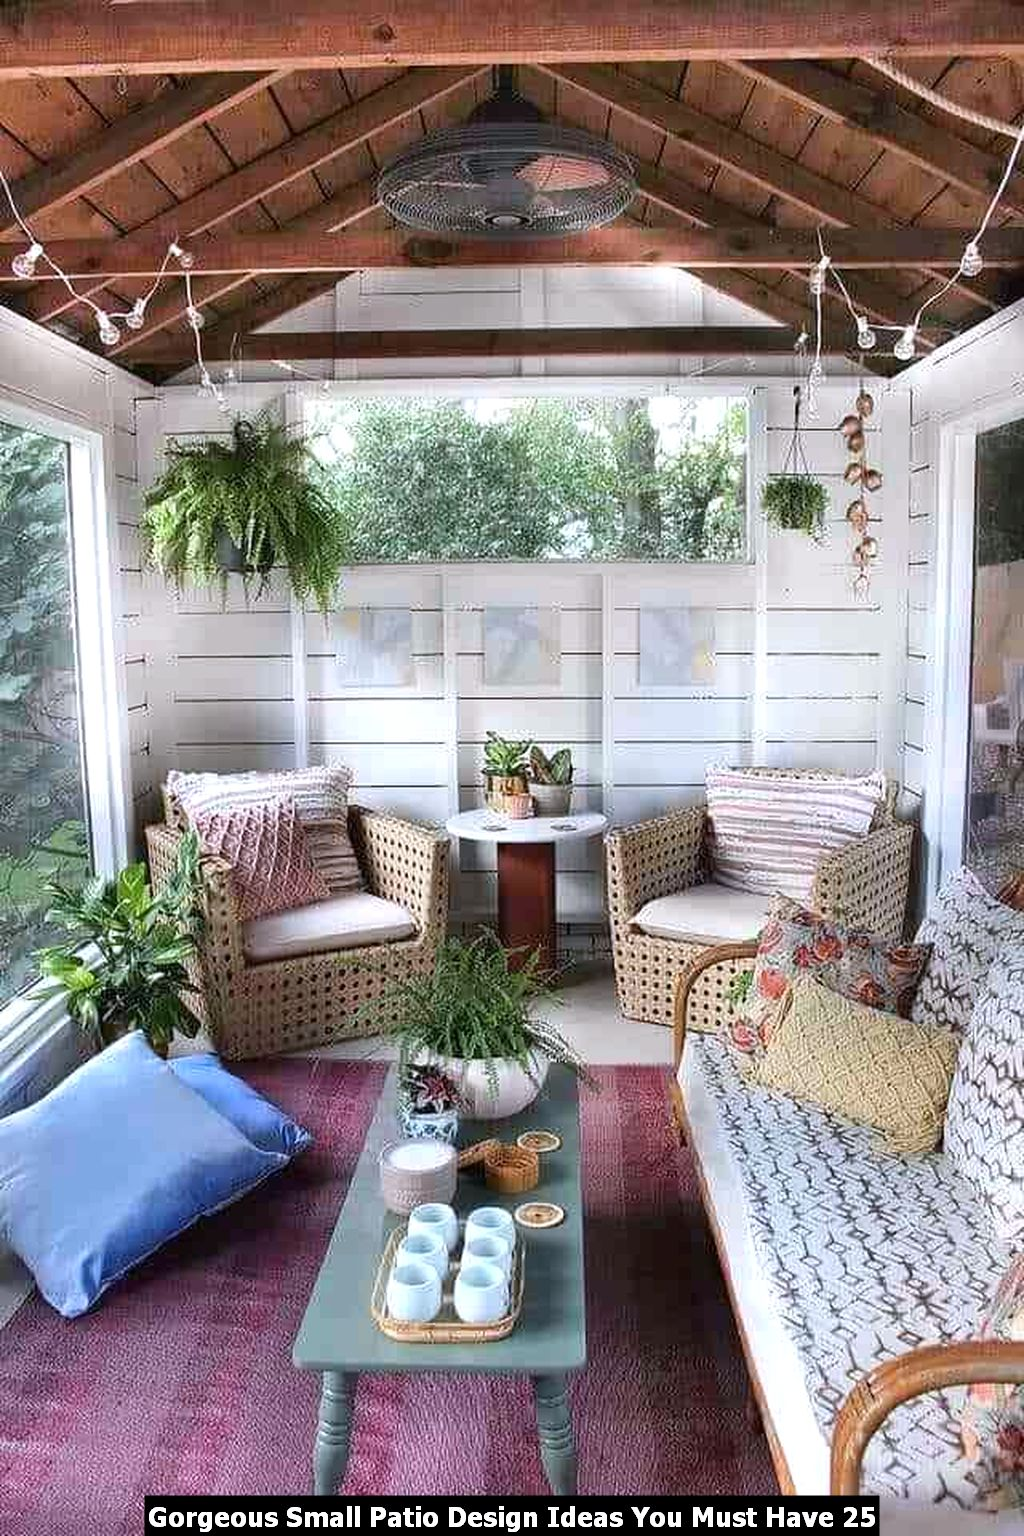 Gorgeous Small Patio Design Ideas You Must Have 25